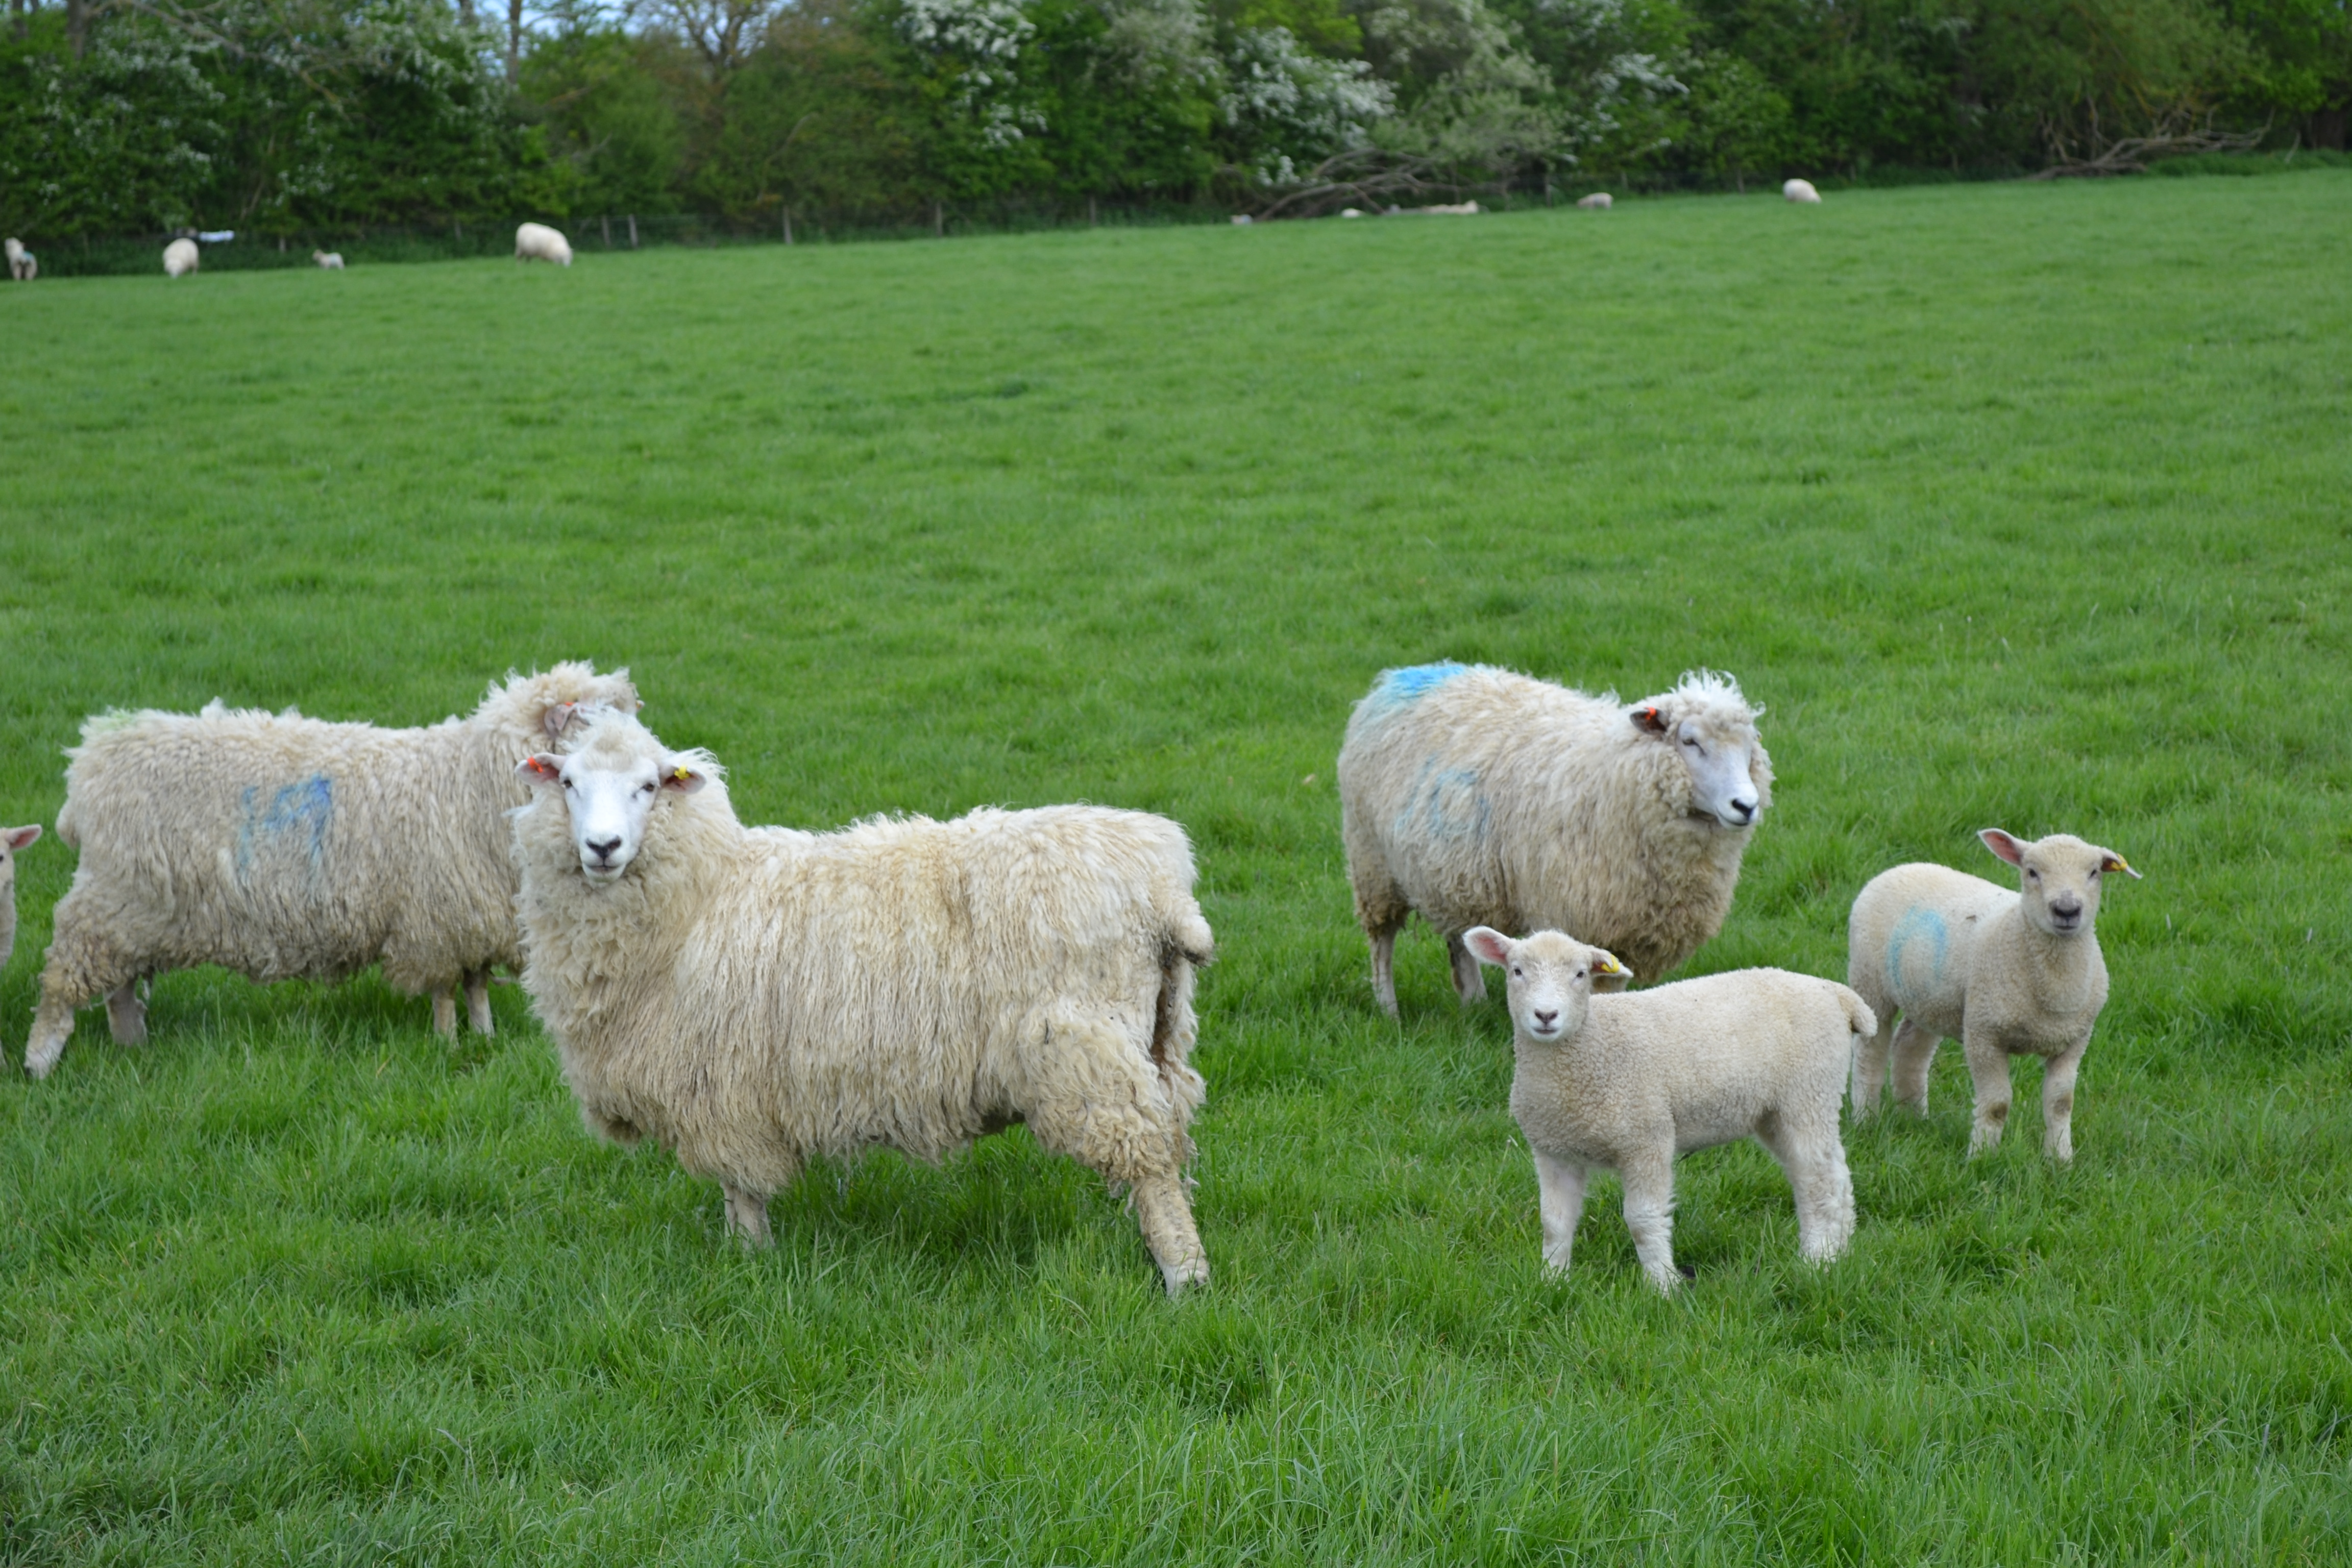 Romney sheep on a local farm